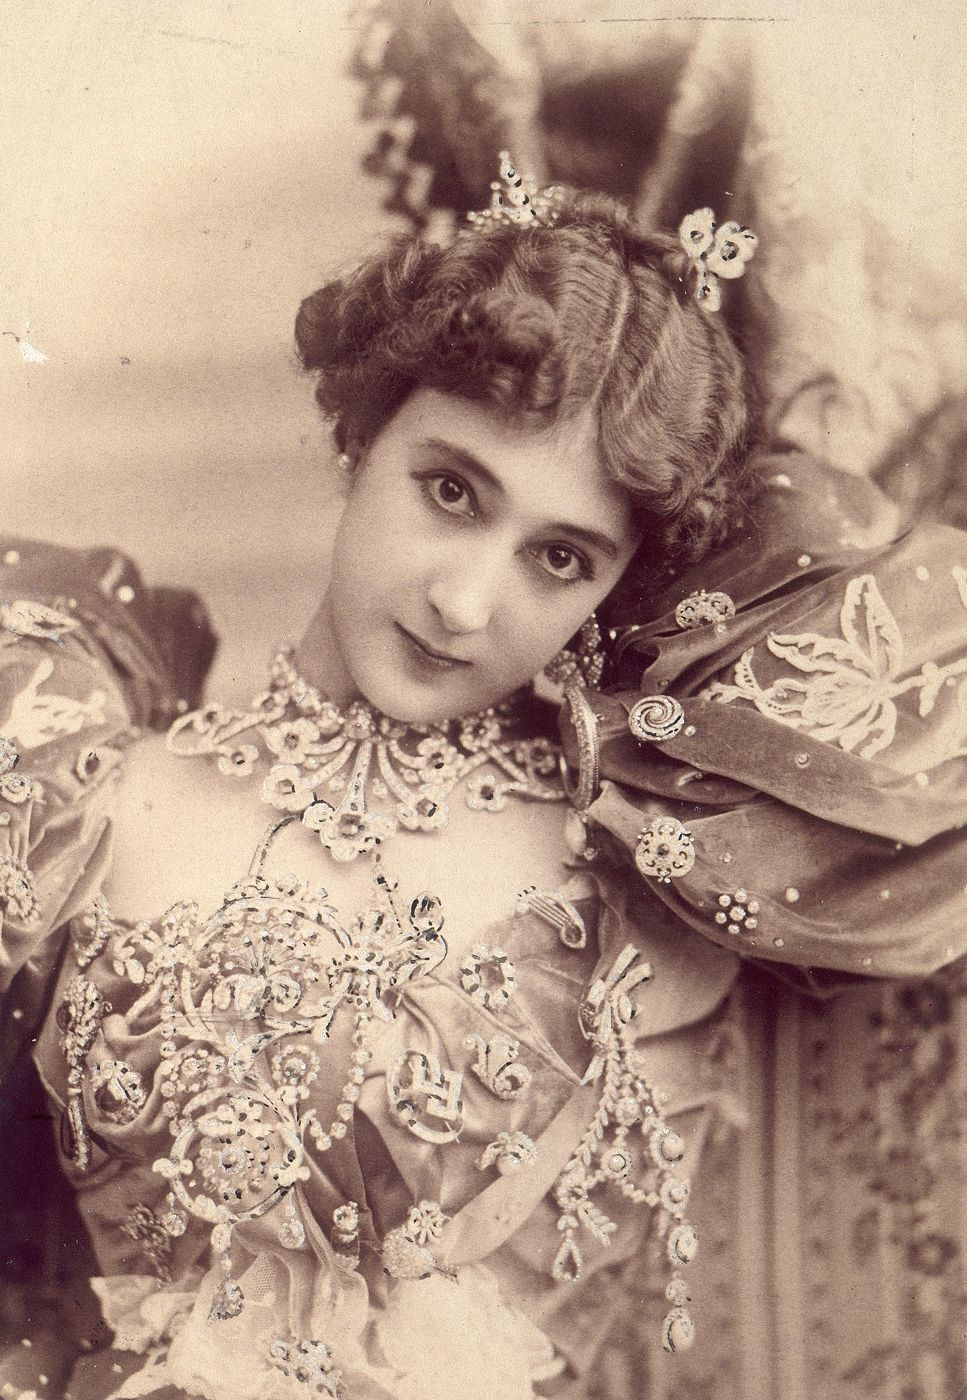 Famous People Named Caroline pertaining to caroline 'la belle' otero, nearly as famous for her jewels as her